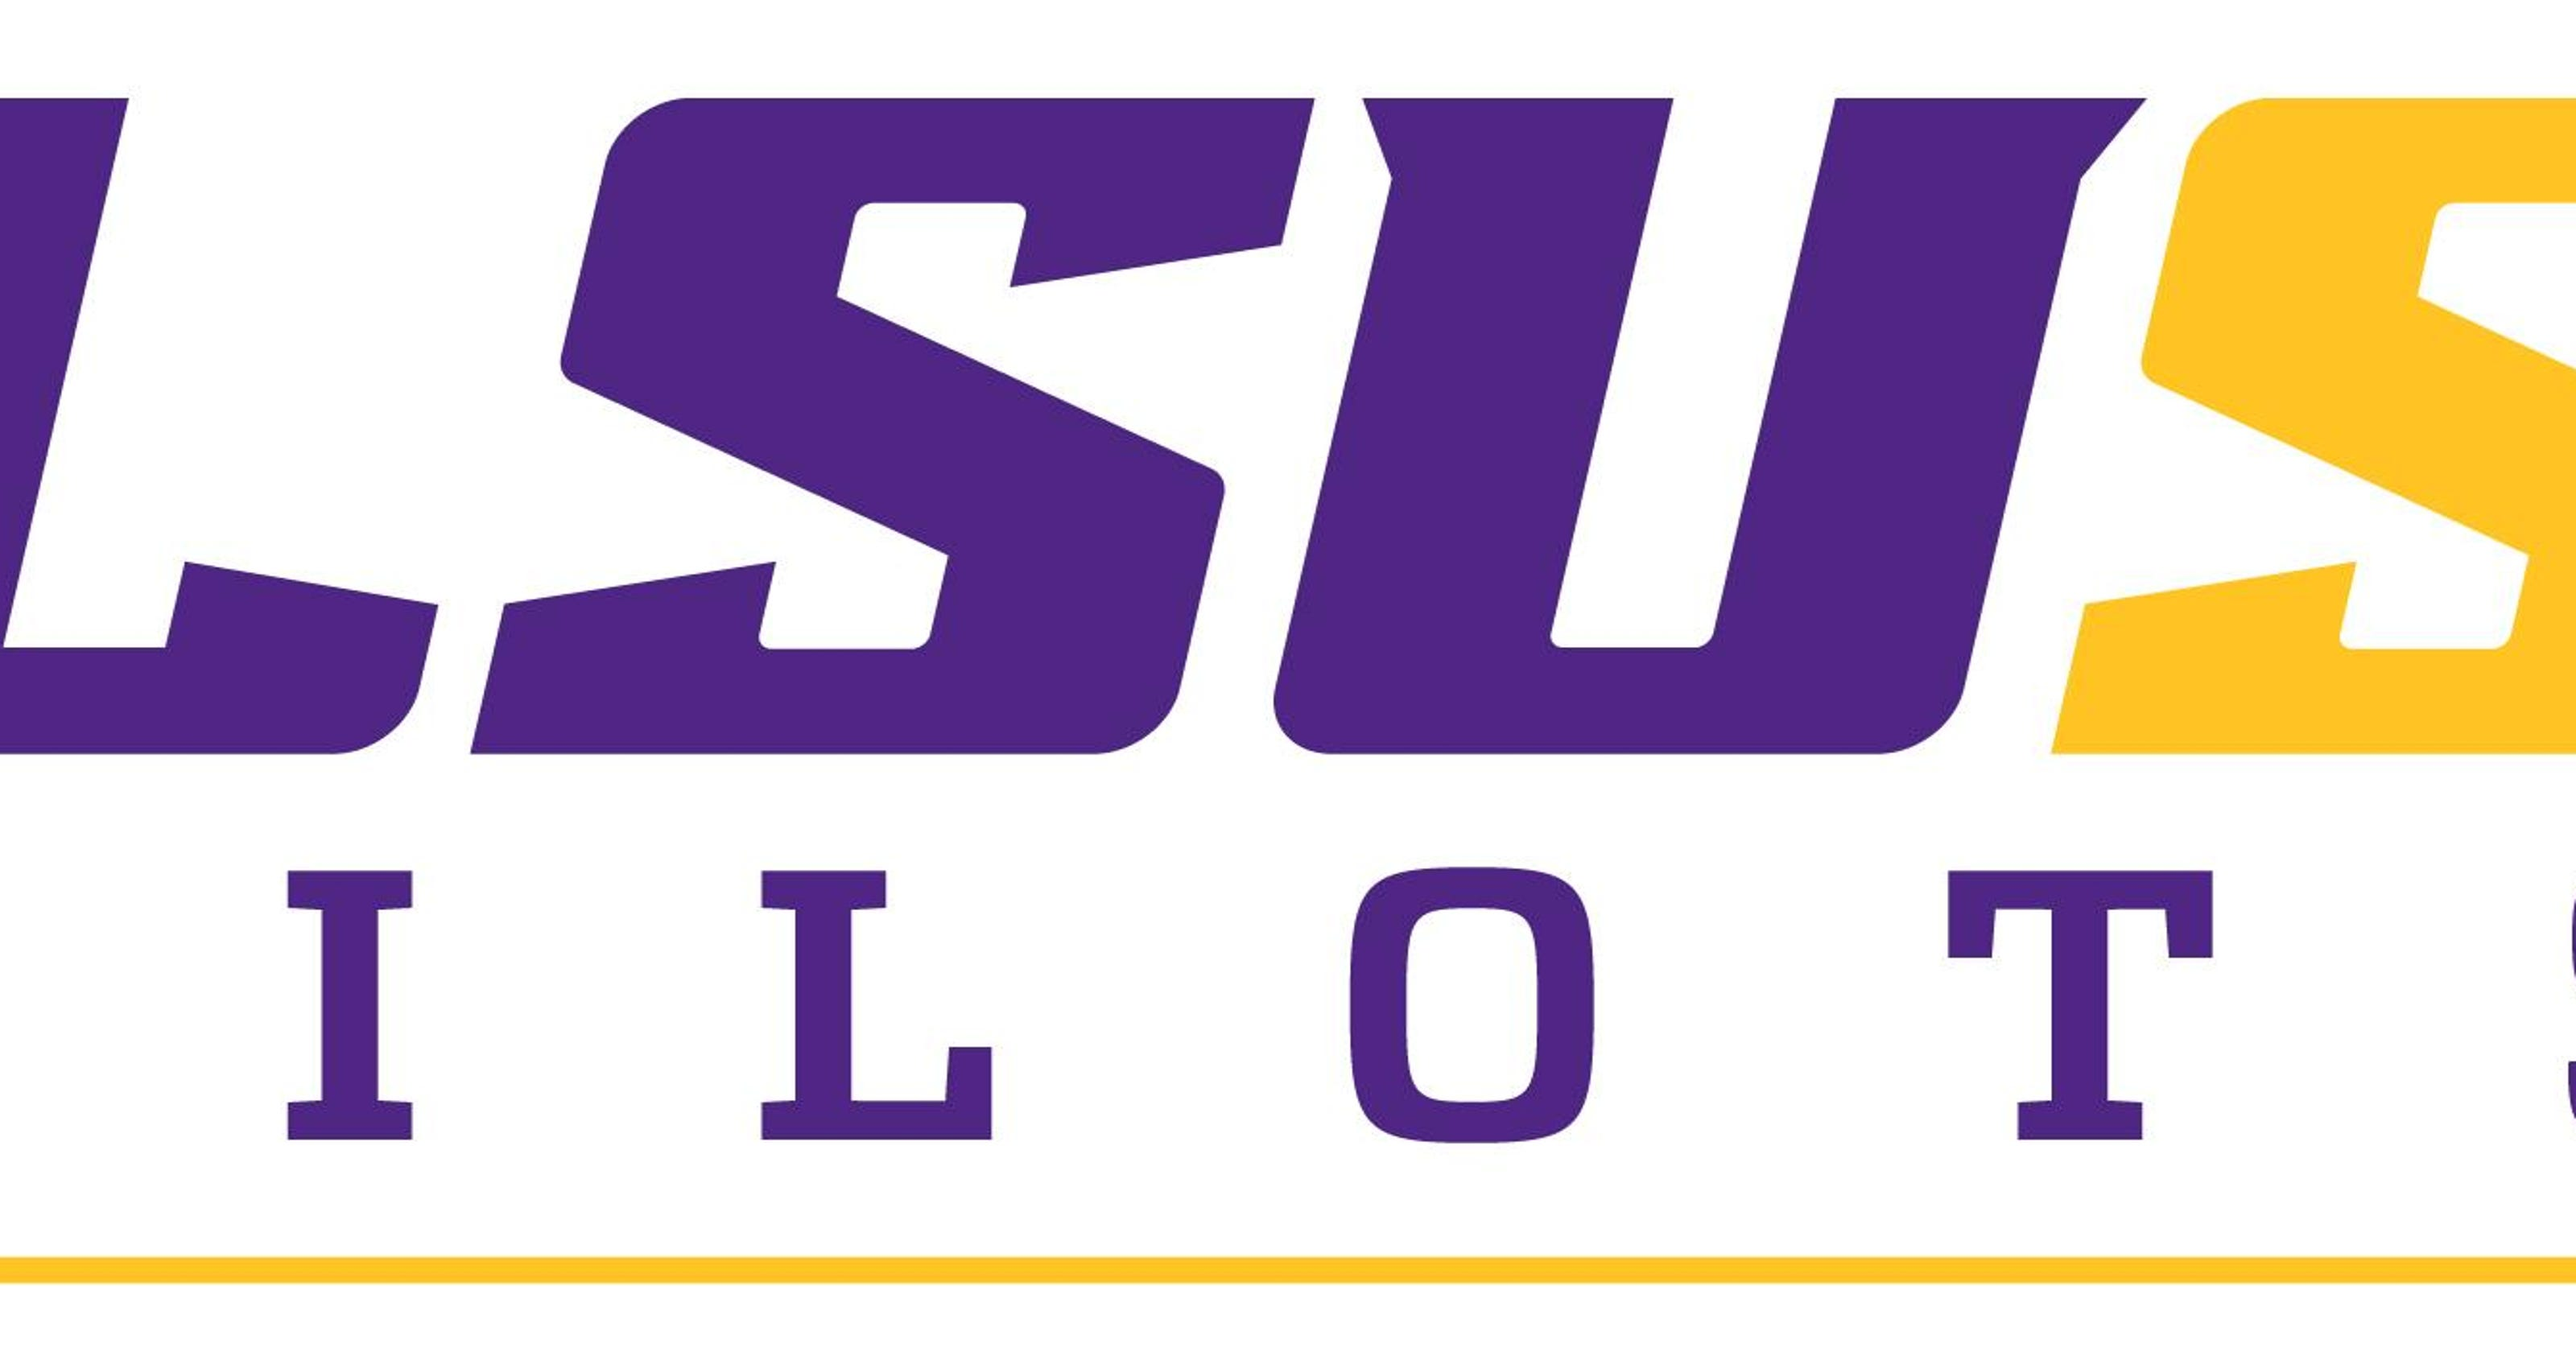 Drug testing has been afterthought for LSUS athletics